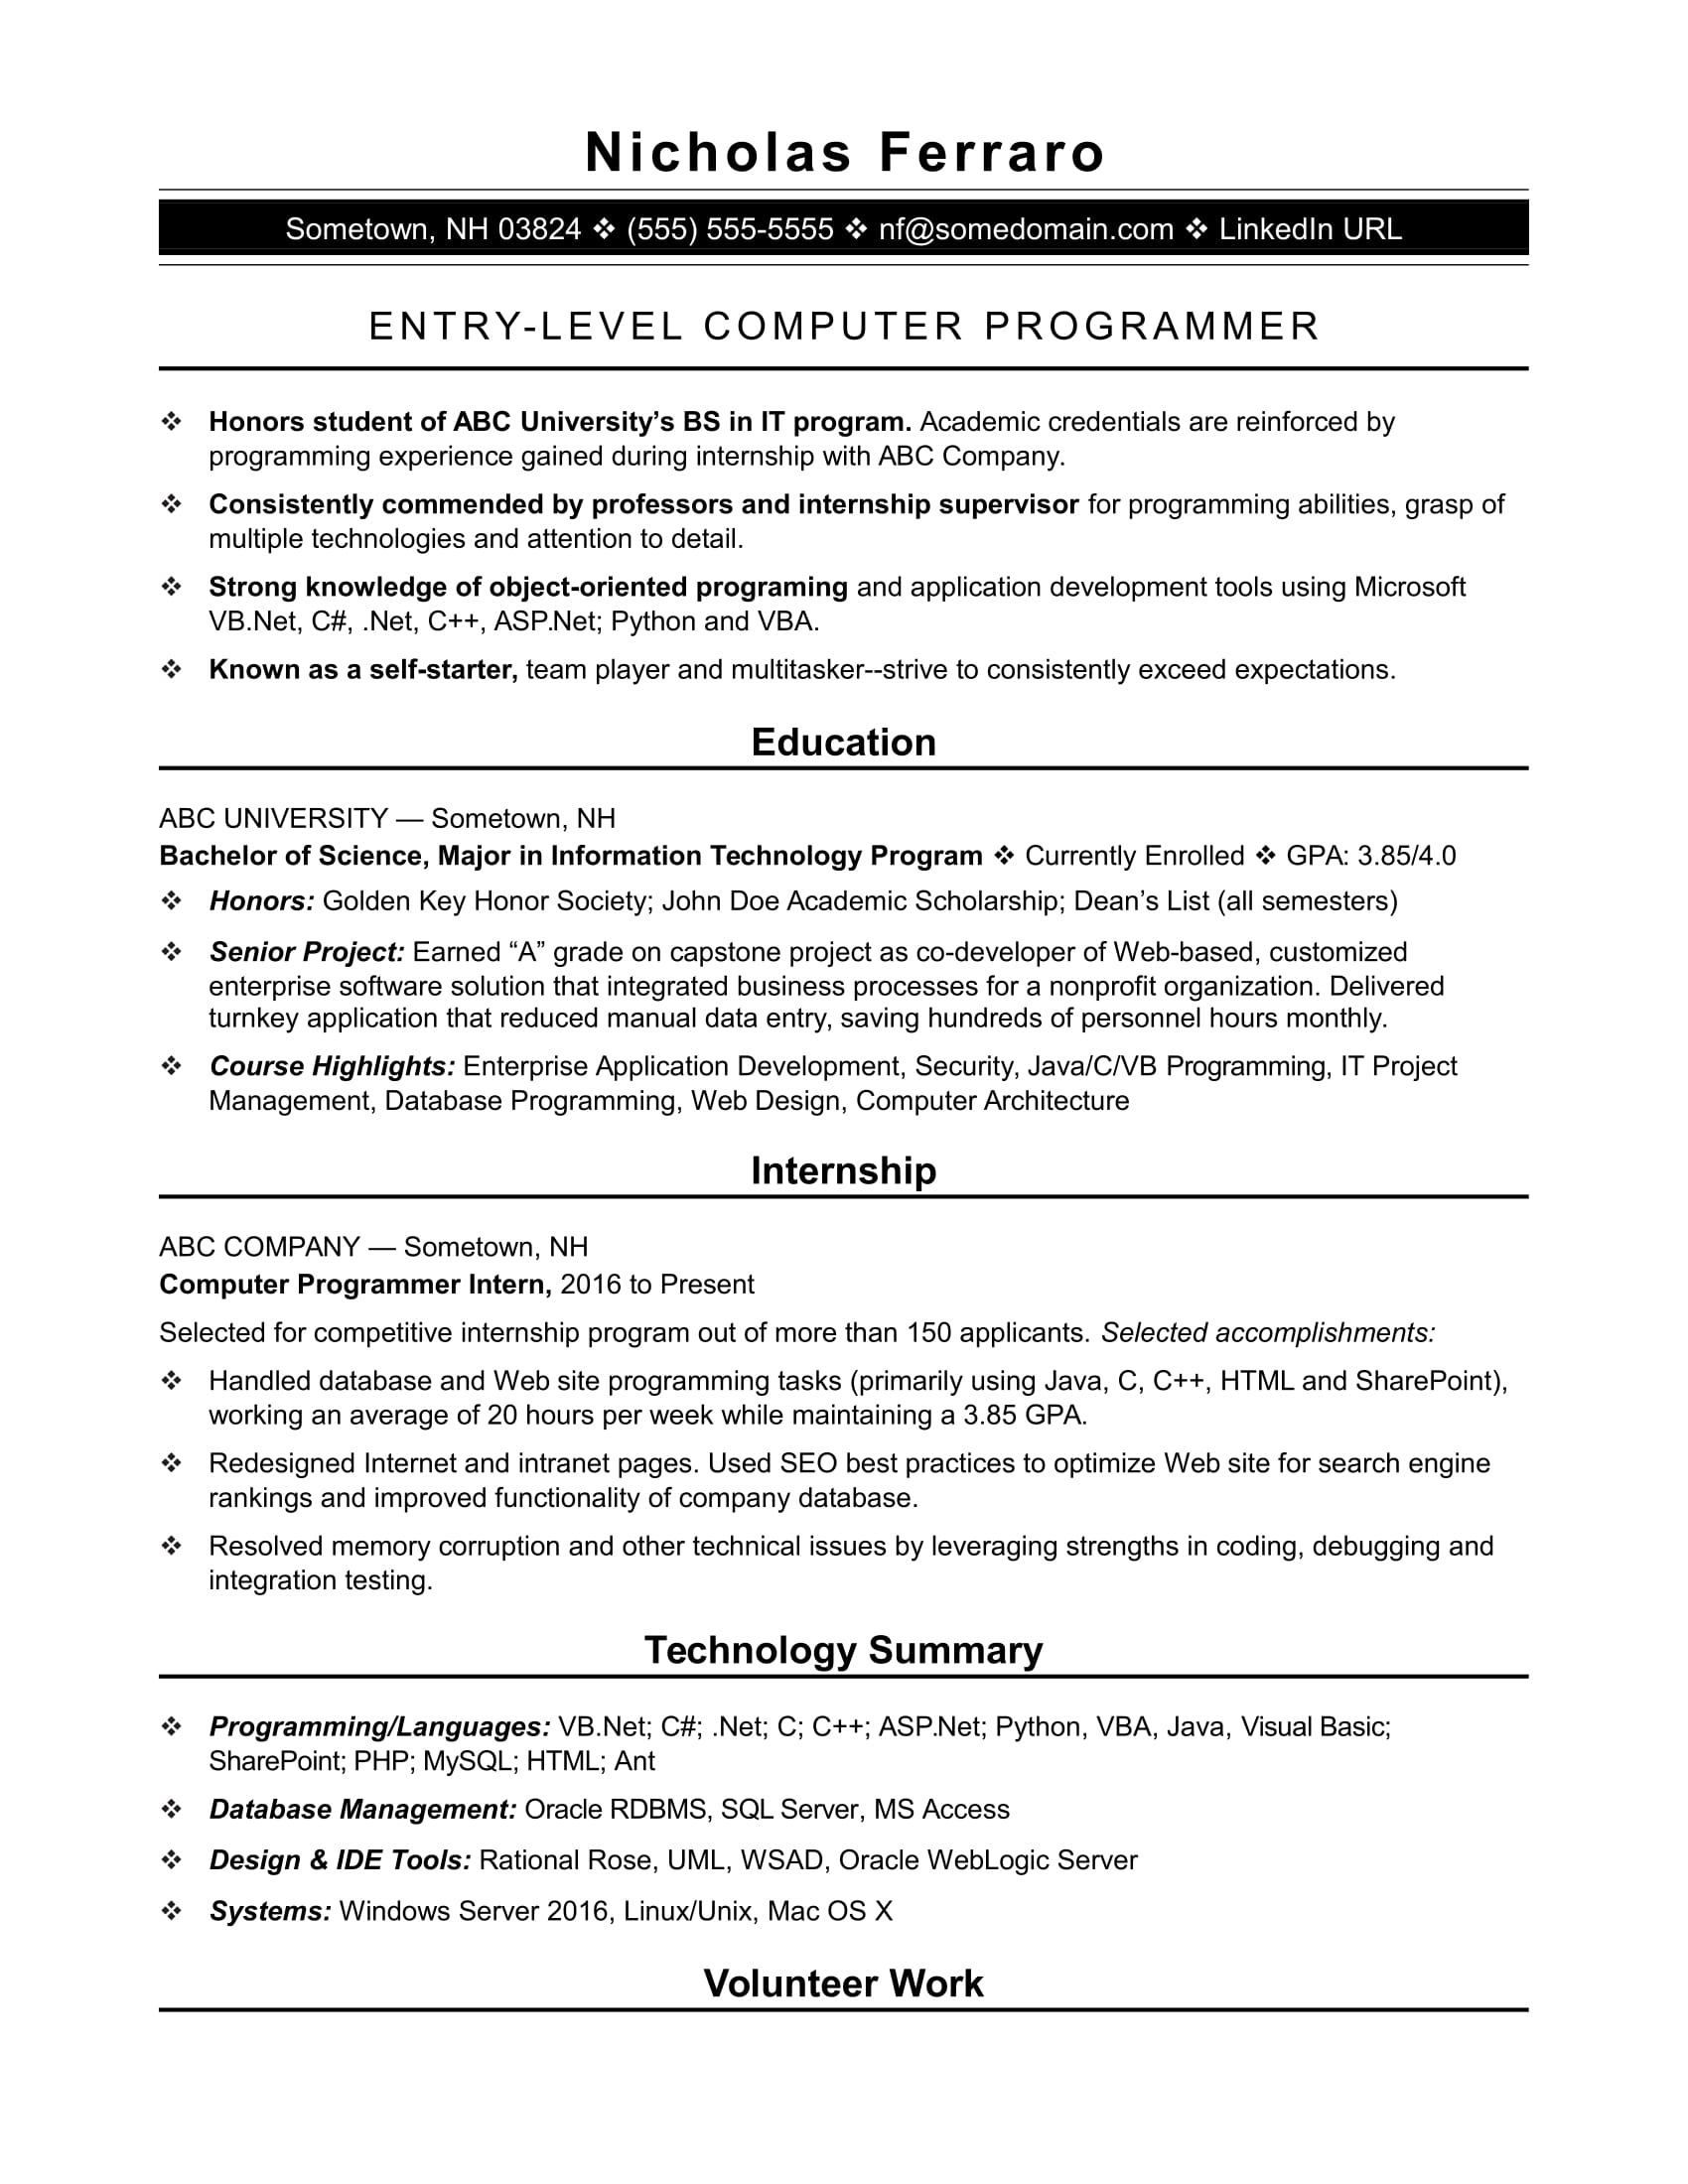 Sample Resume For An Entry Level Computer Programmer  C Level Resume